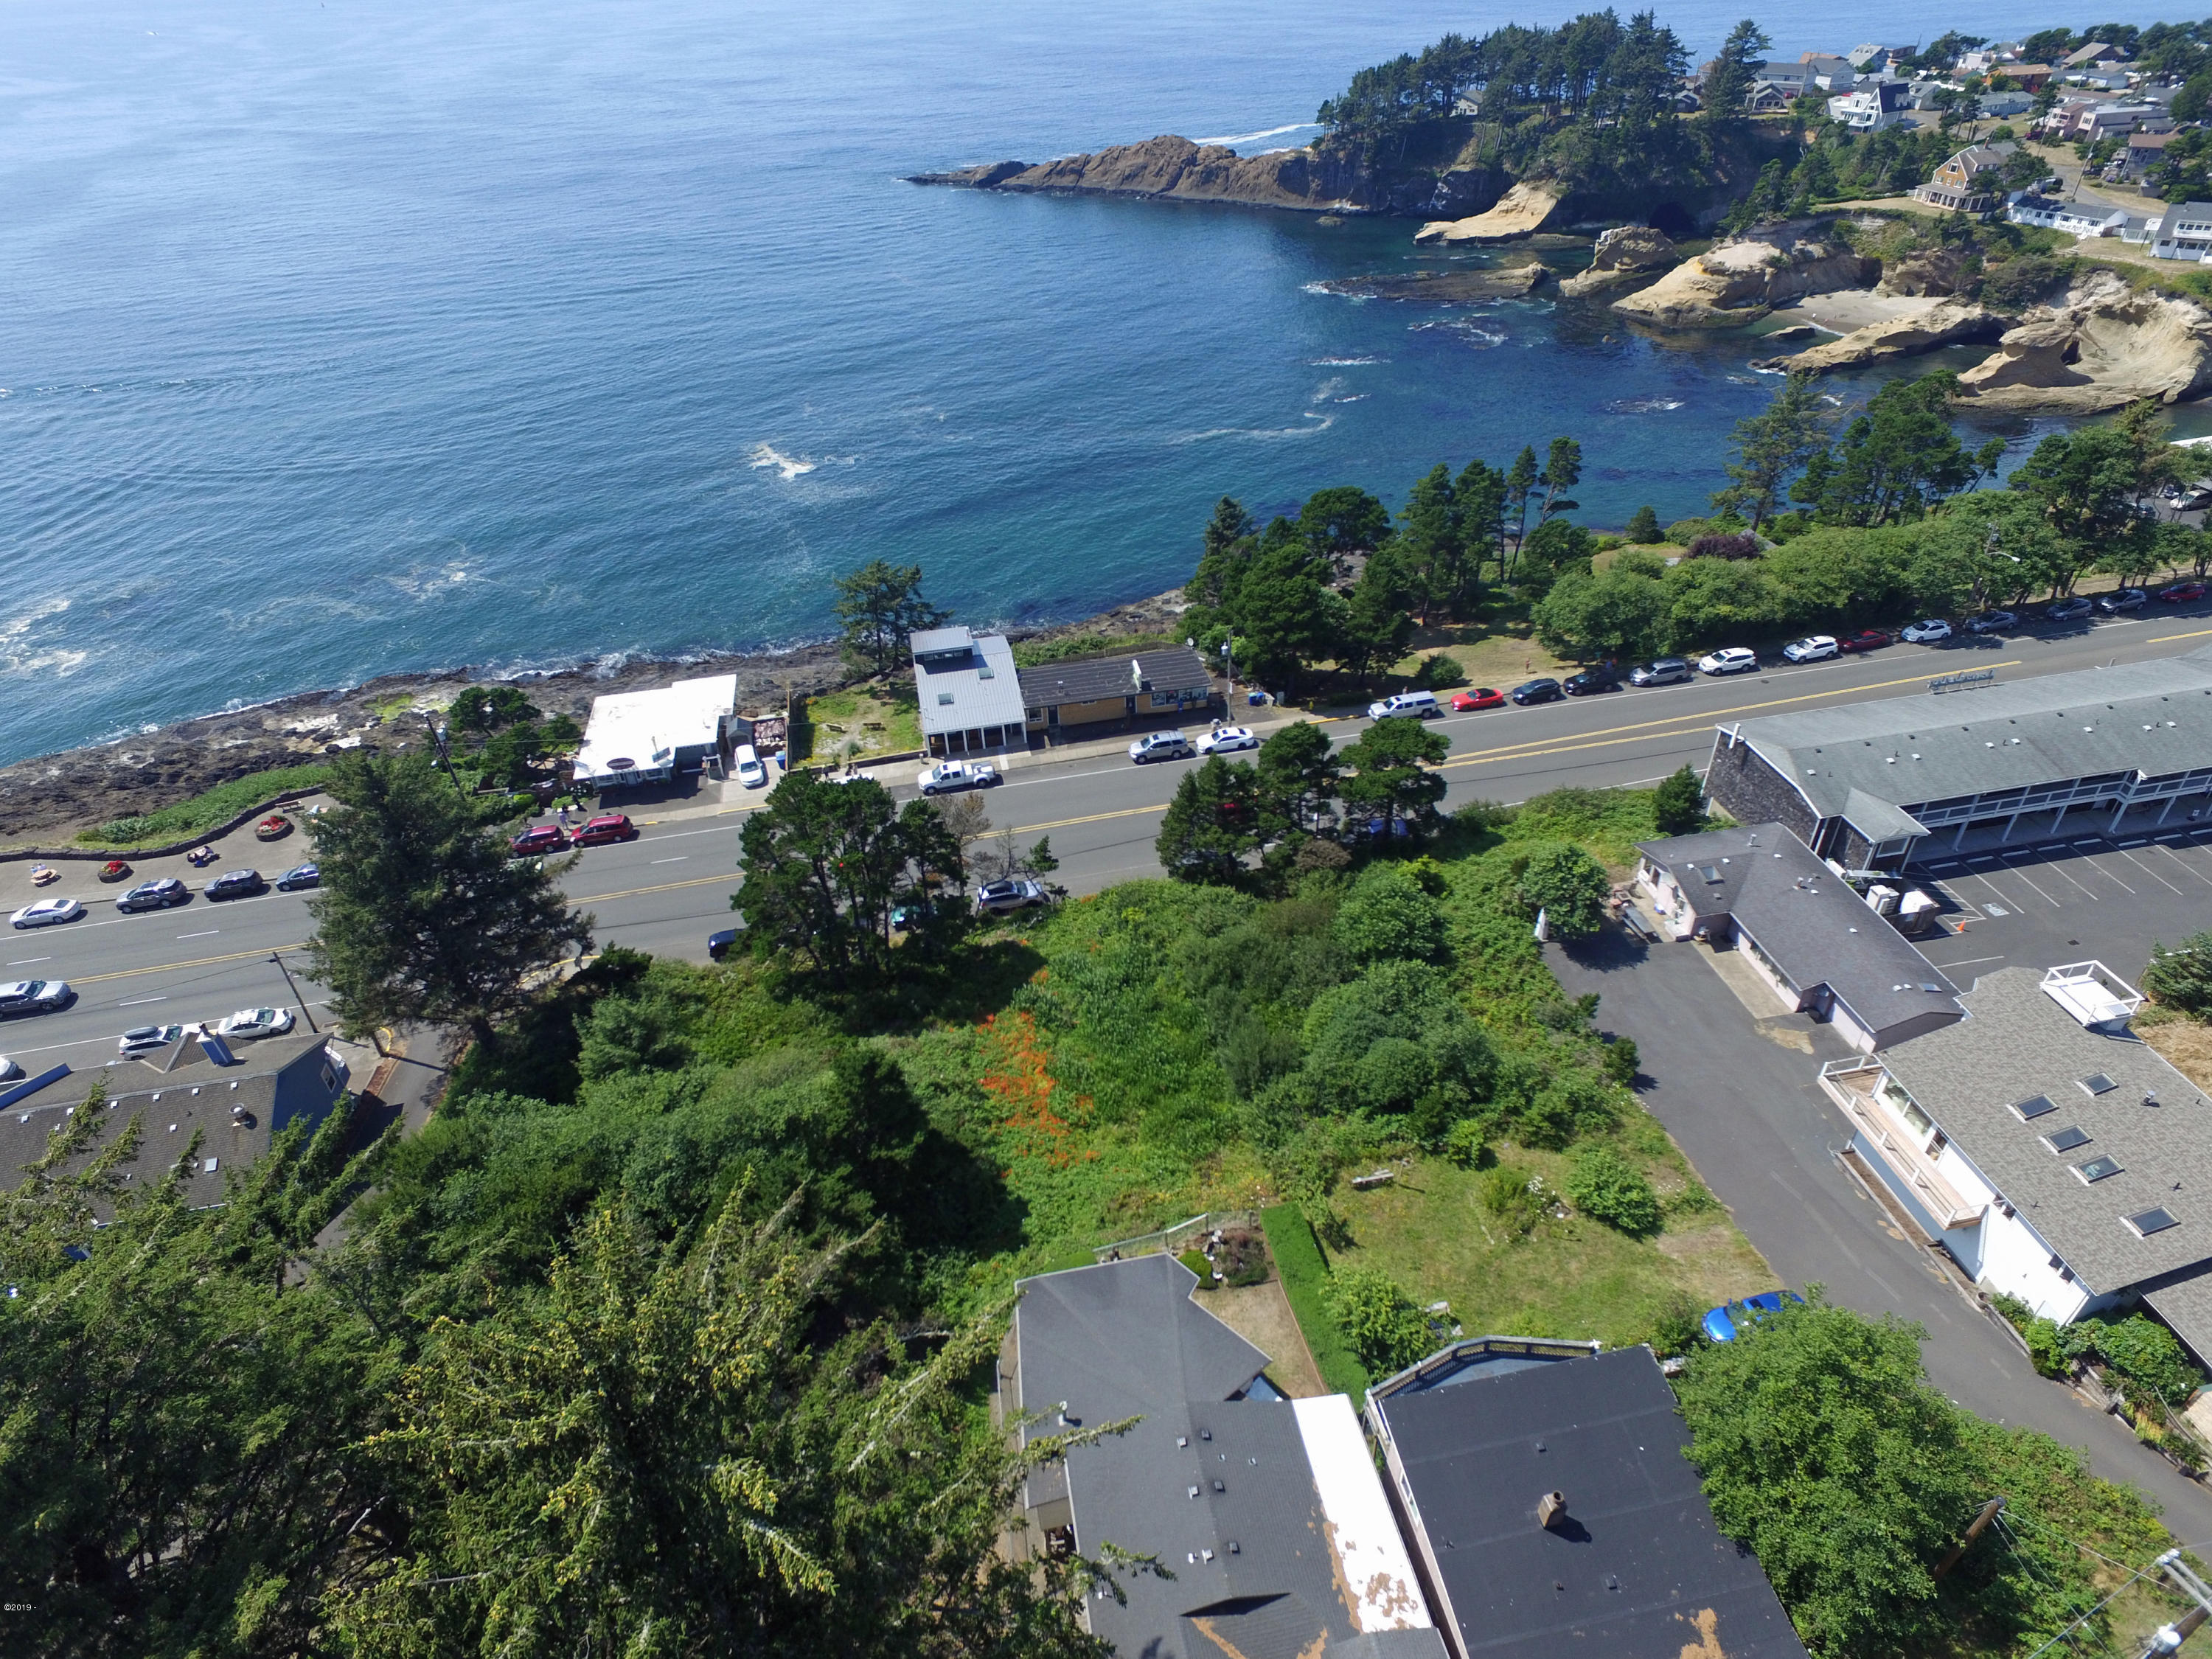 LOT 2800 Williams, Depoe Bay, OR 97231 - 3